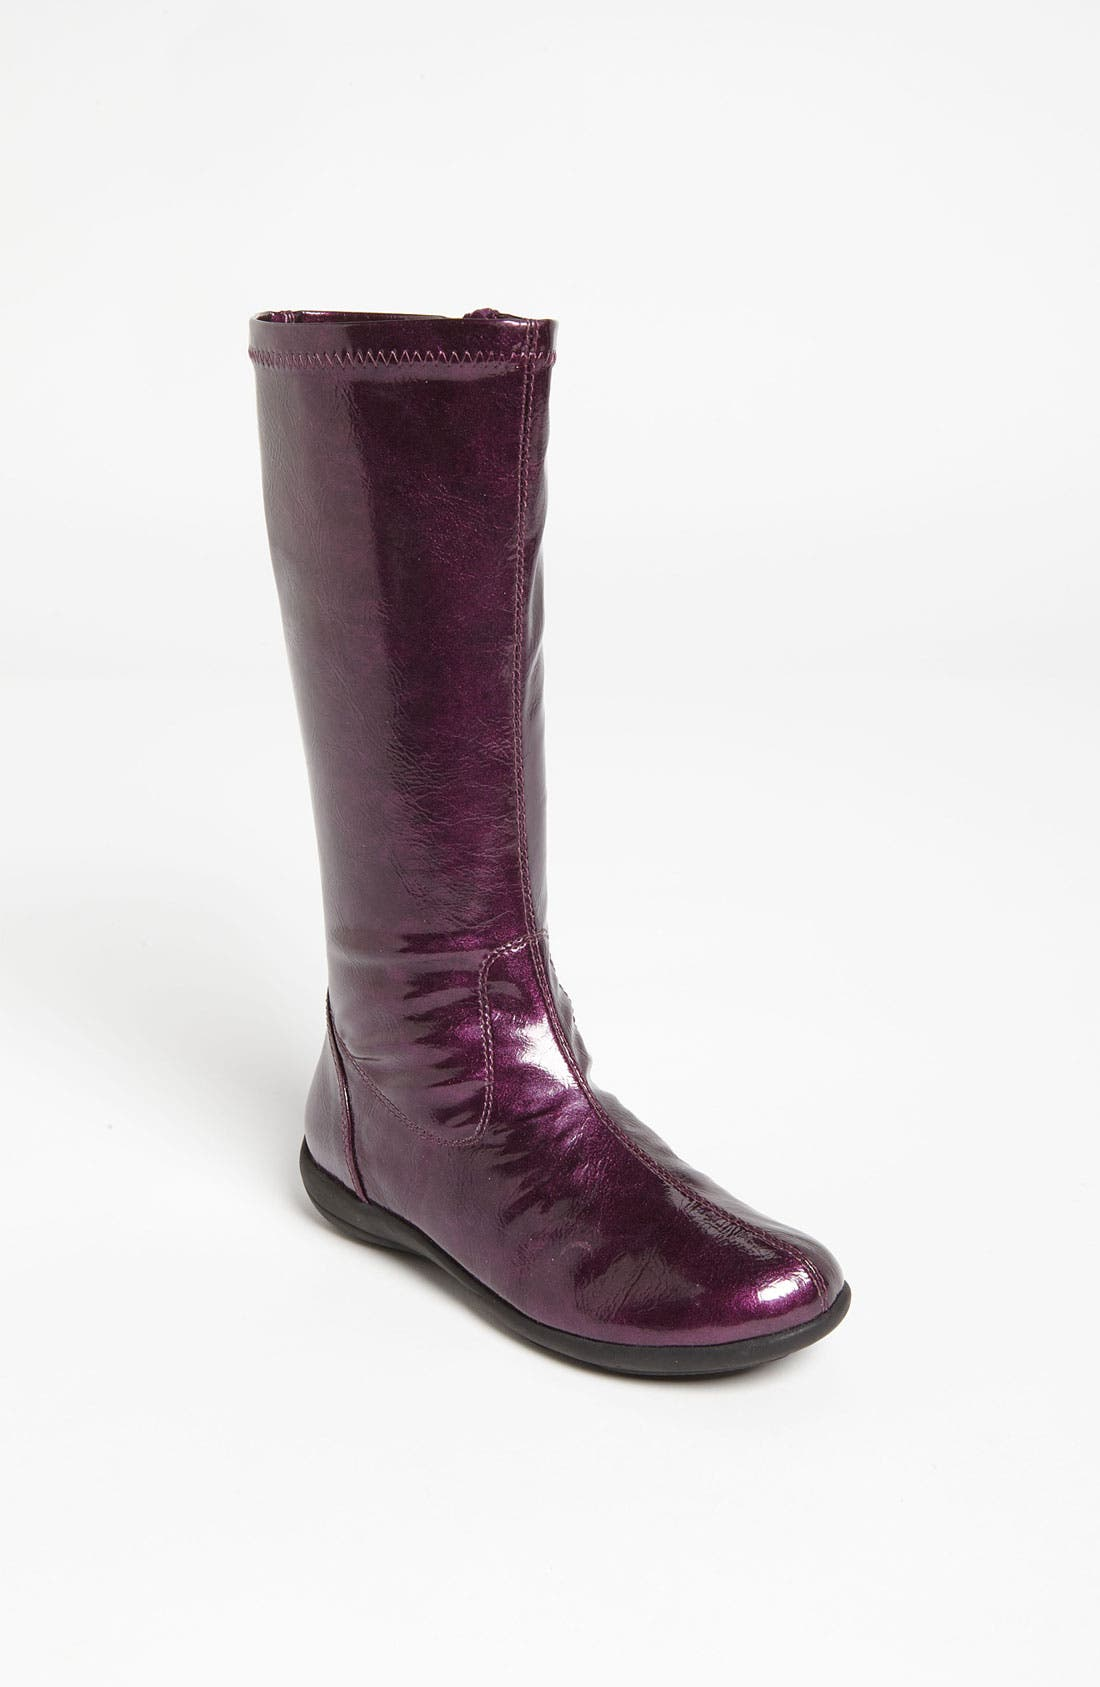 Alternate Image 1 Selected - Kenneth Cole Reaction 'Heart Wink' Boot (Walker, Toddler, Little Kid & Big Kid)